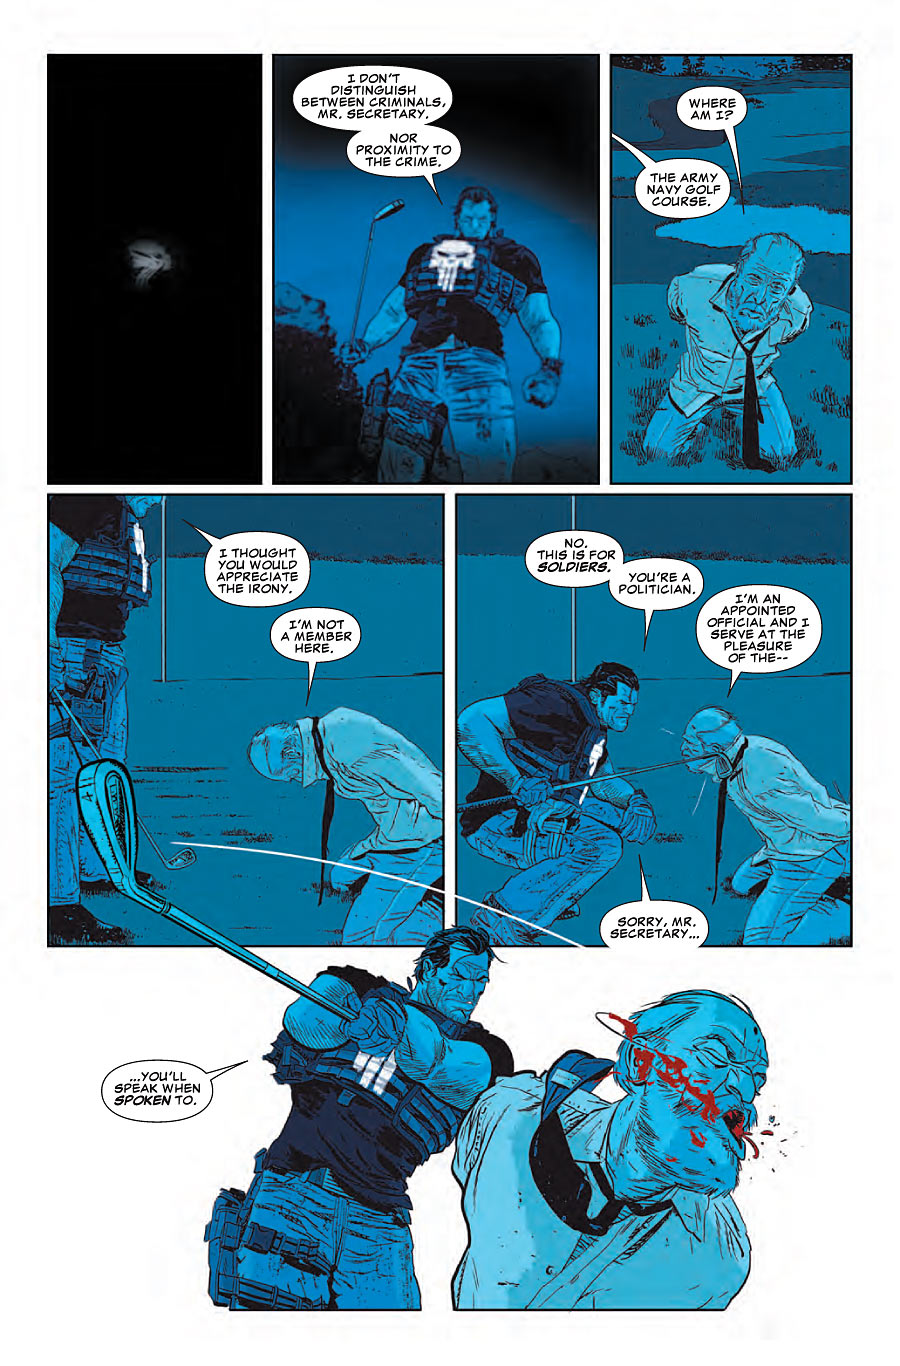 Punisher #16 preview